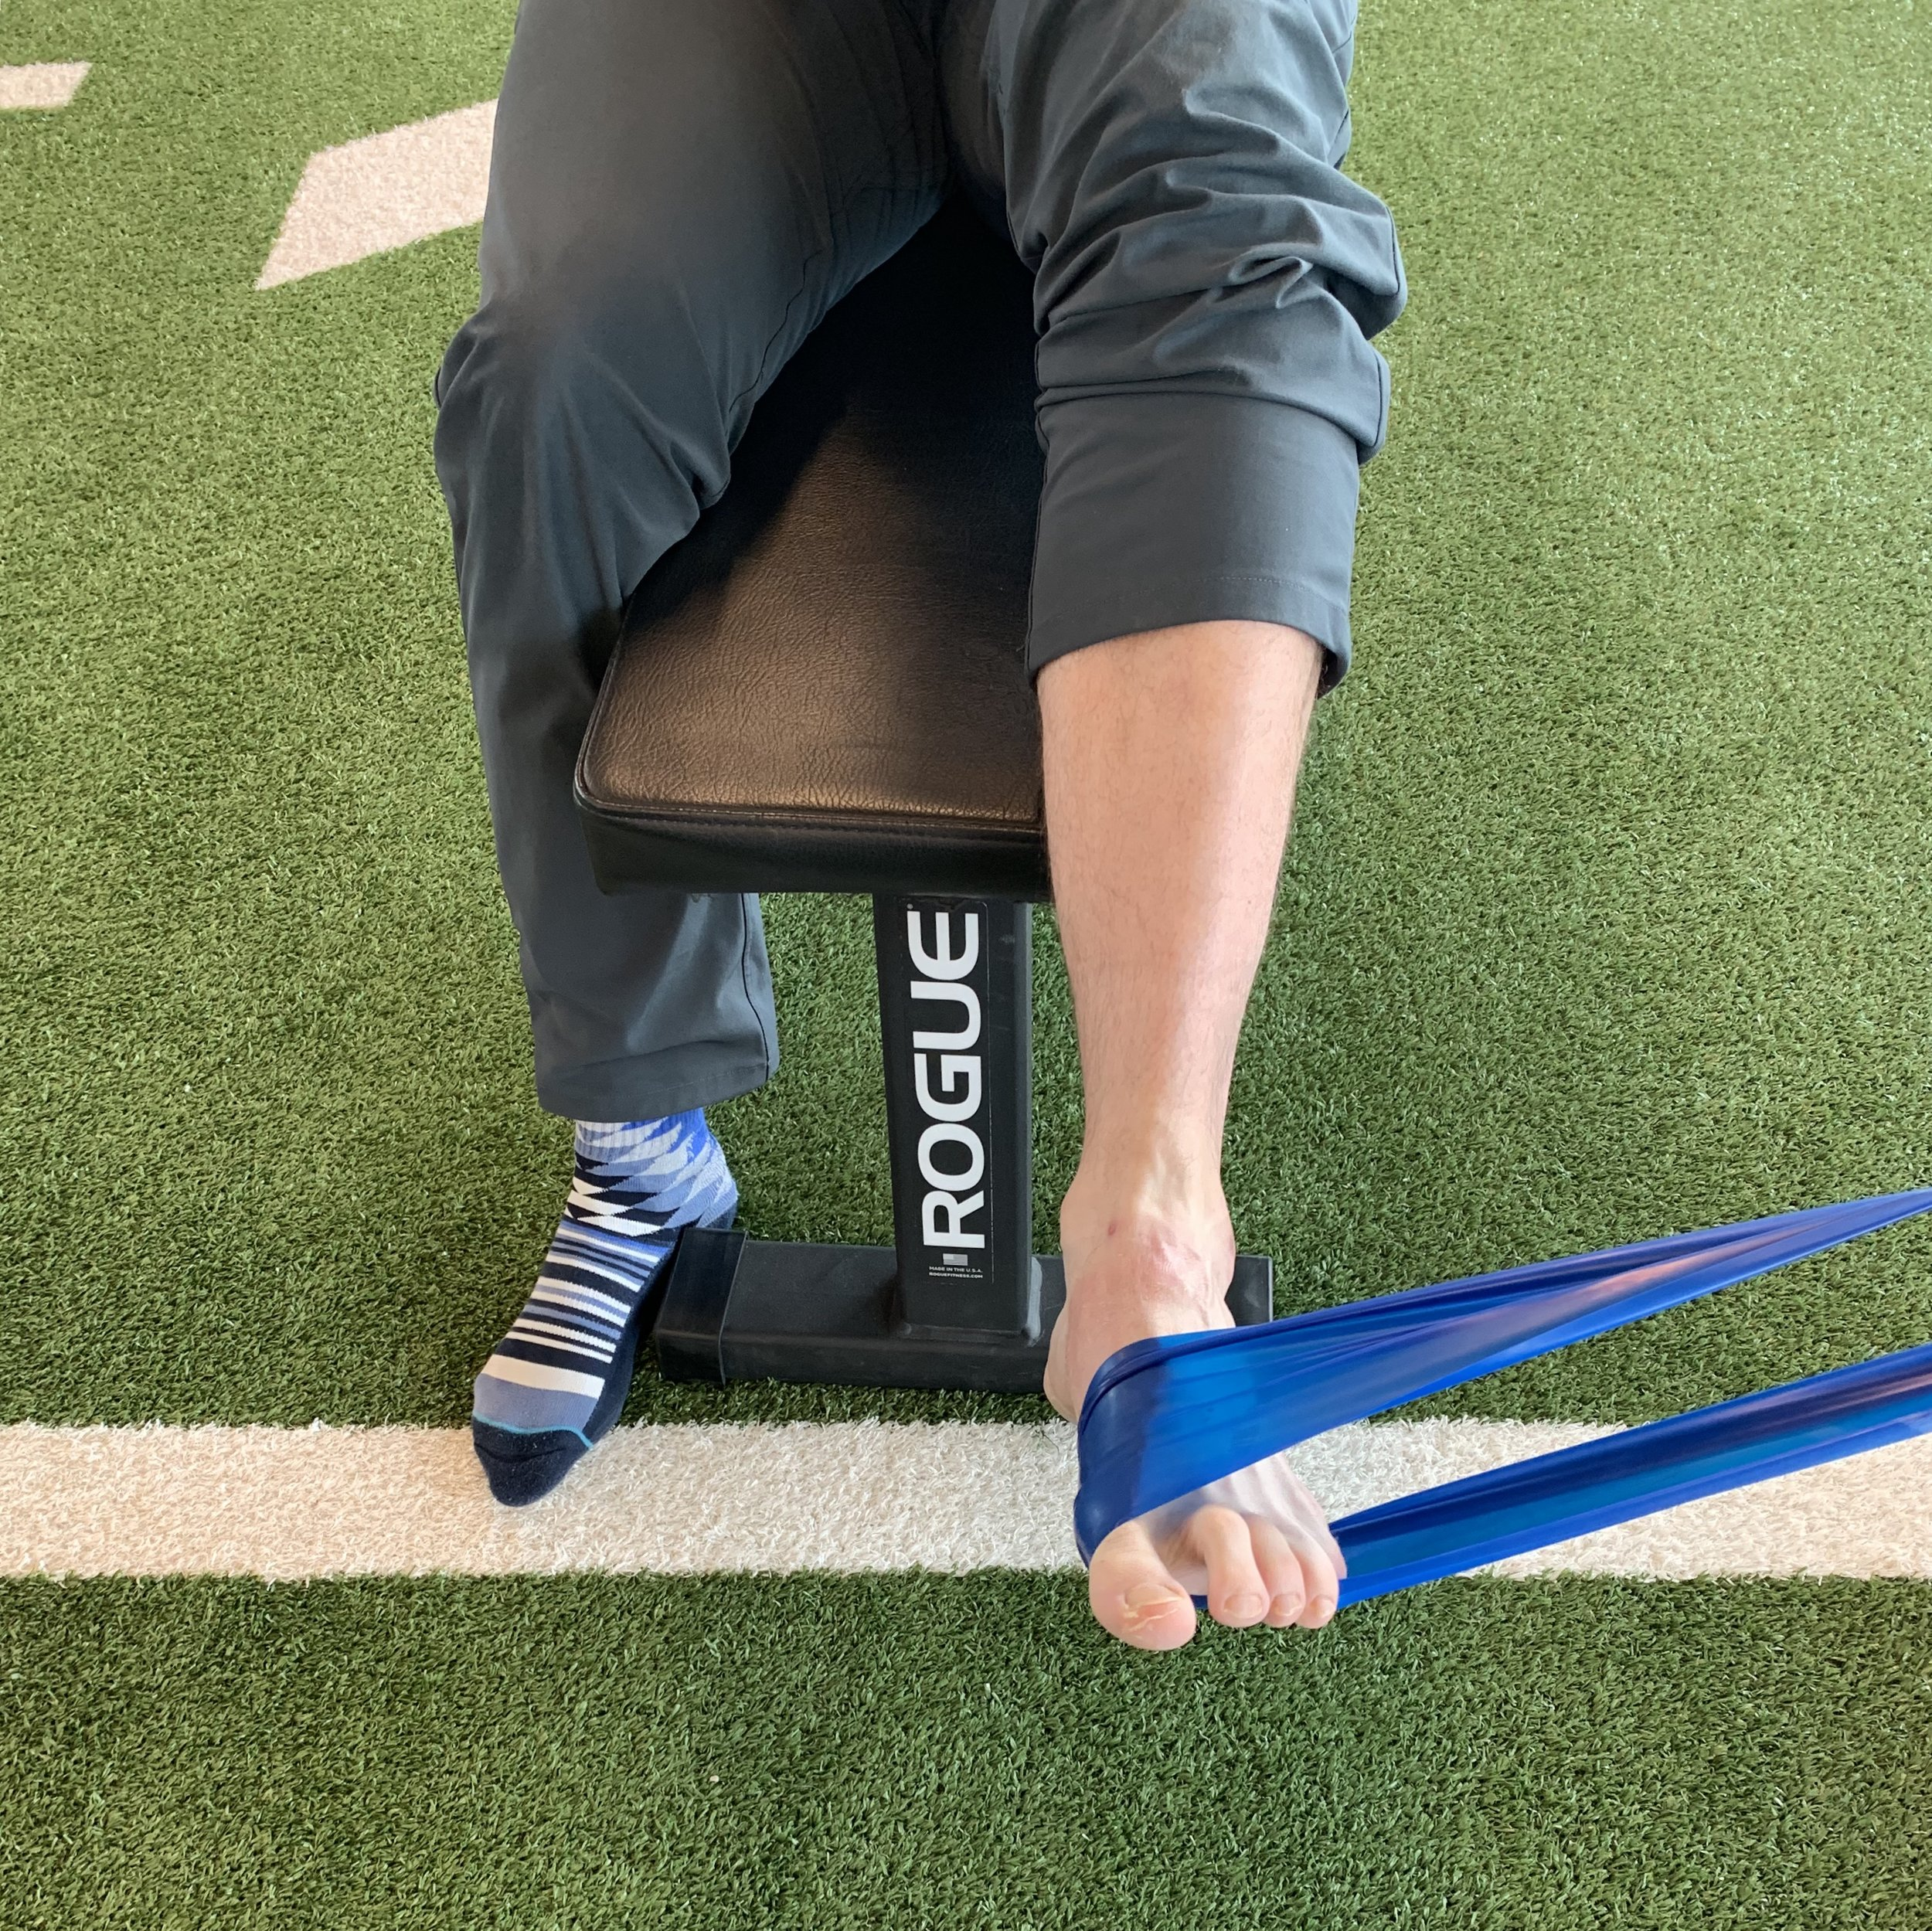 Tibialis Posterior Activation